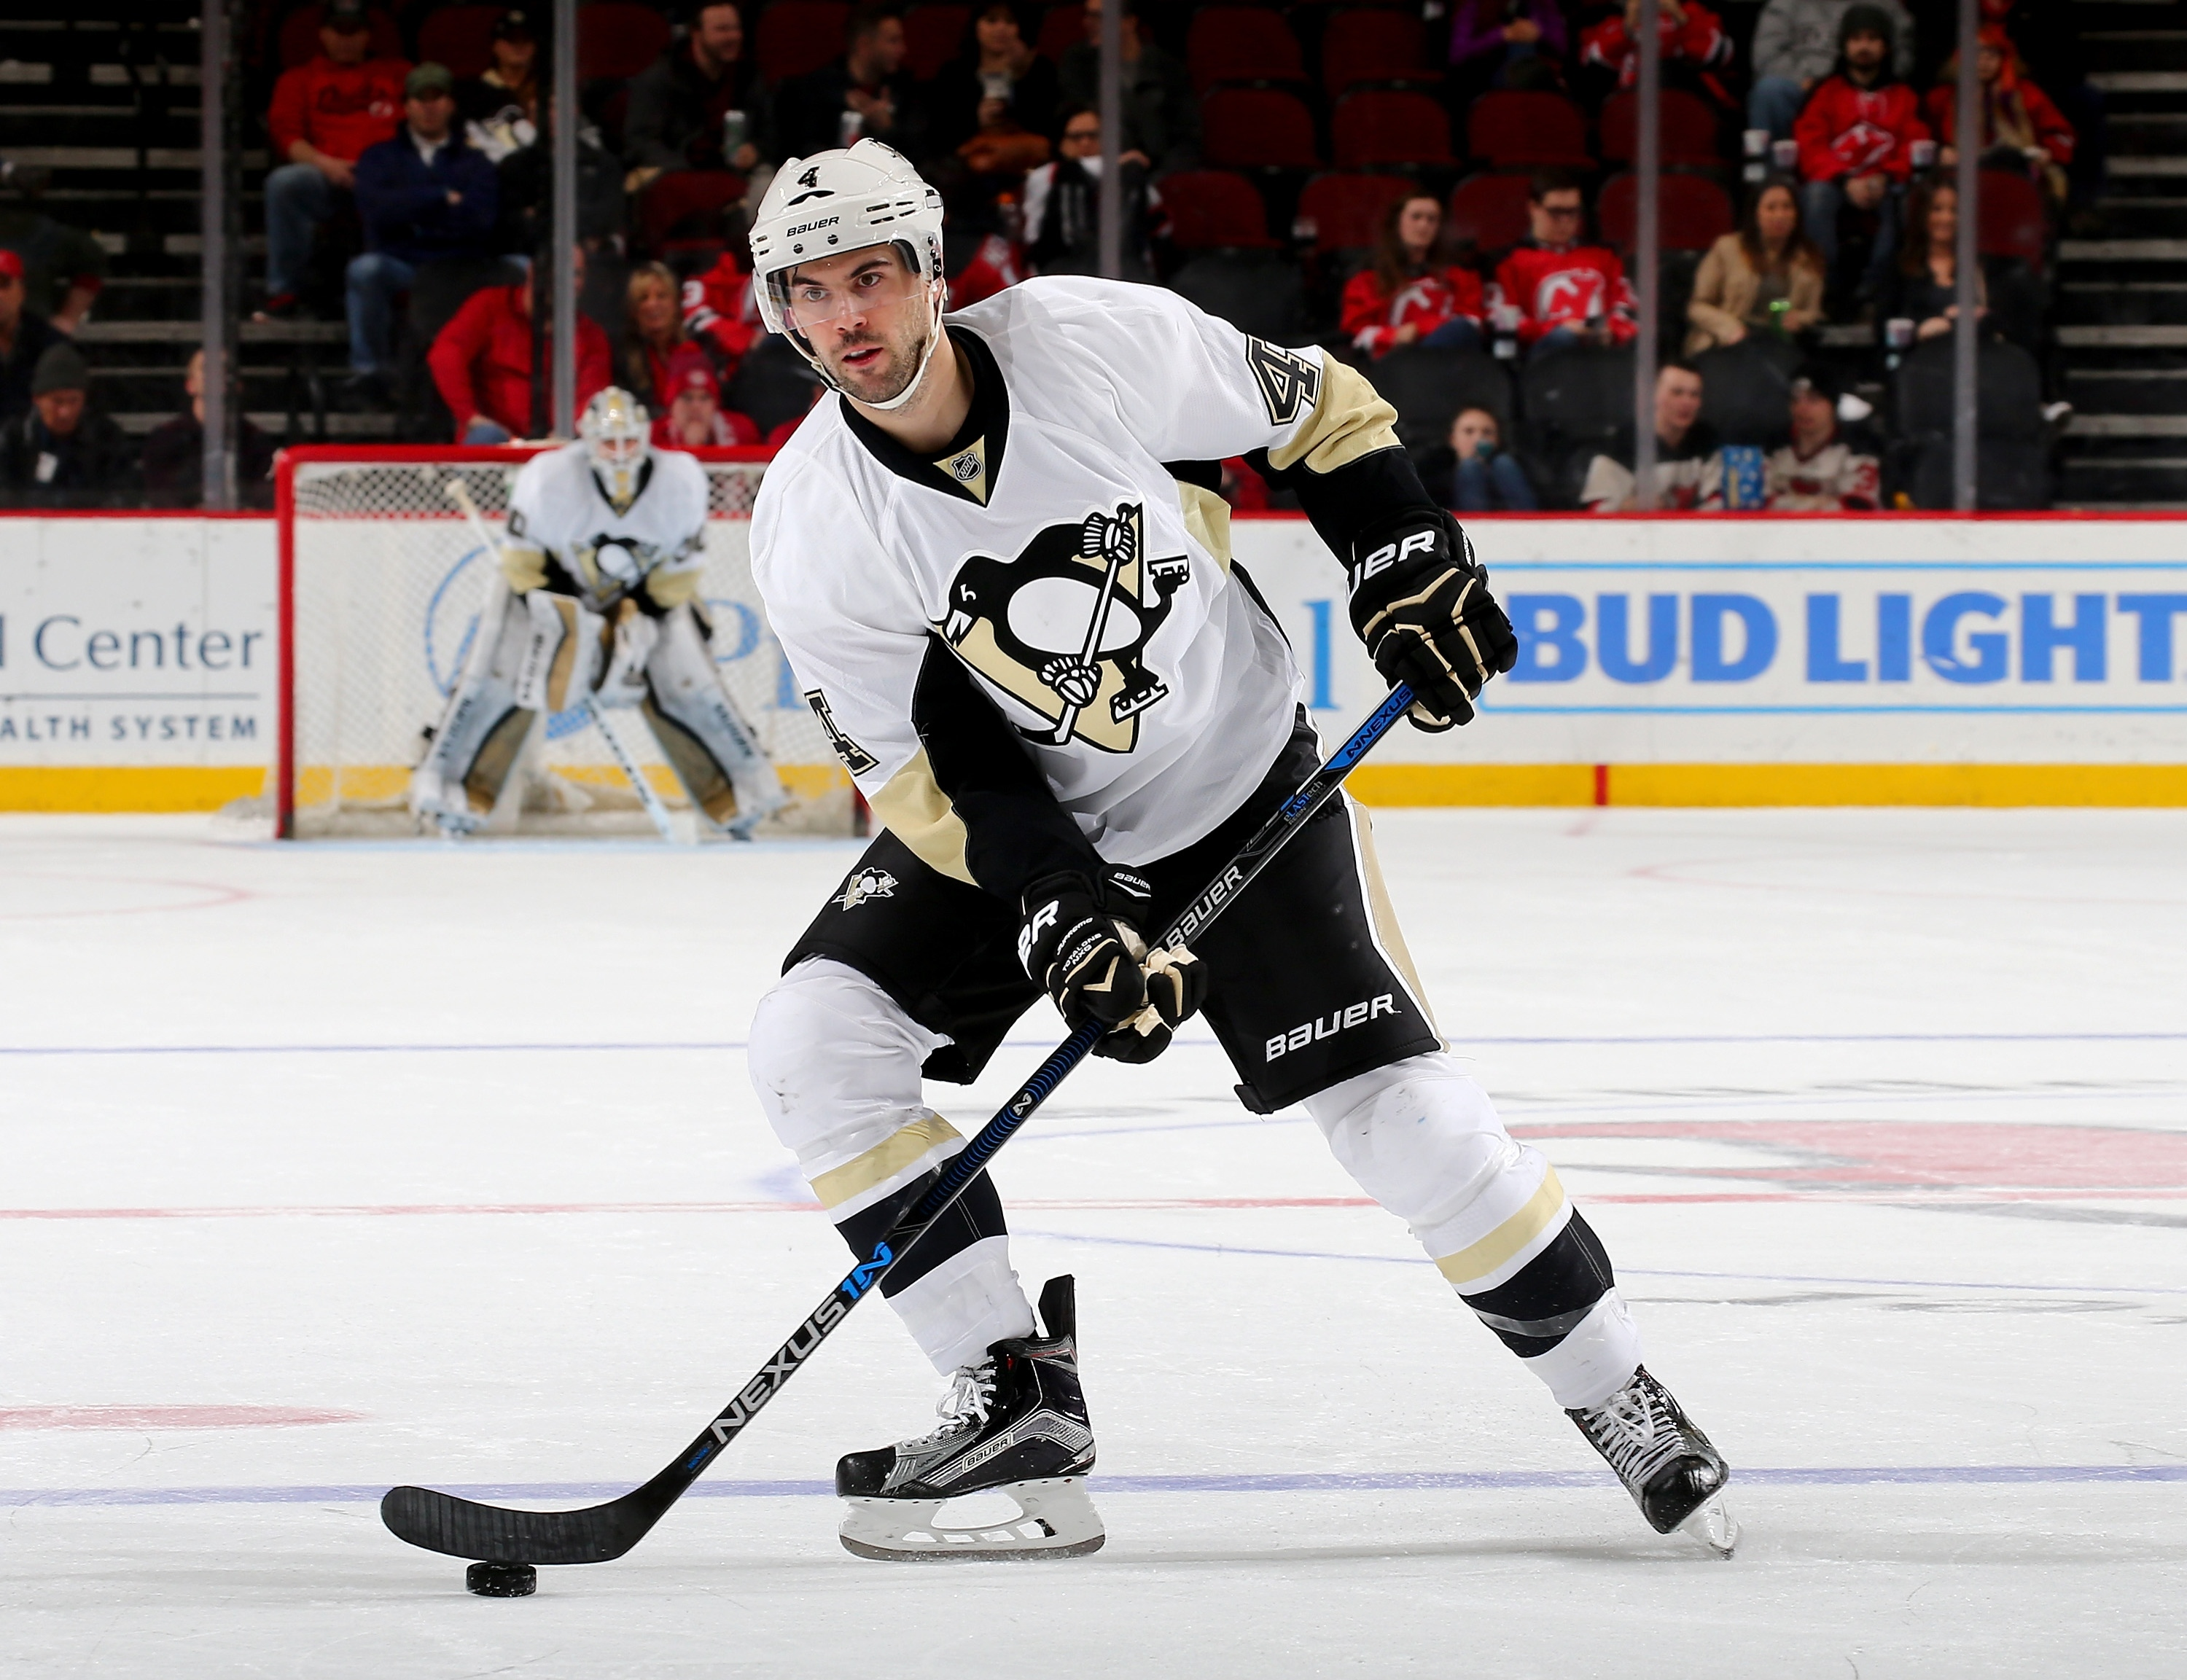 NEWARK, NJ - MARCH 06: Justin Schultz #4 of the Pittsburgh Penguins looks to pass in the third period against the New Jersey Devils on March 6, 2016 at Prudential Center in Newark, New Jersey.The Pittsburgh Penguins defeated the New Jersey Devils 6-1. (Photo by Elsa/Getty Images)